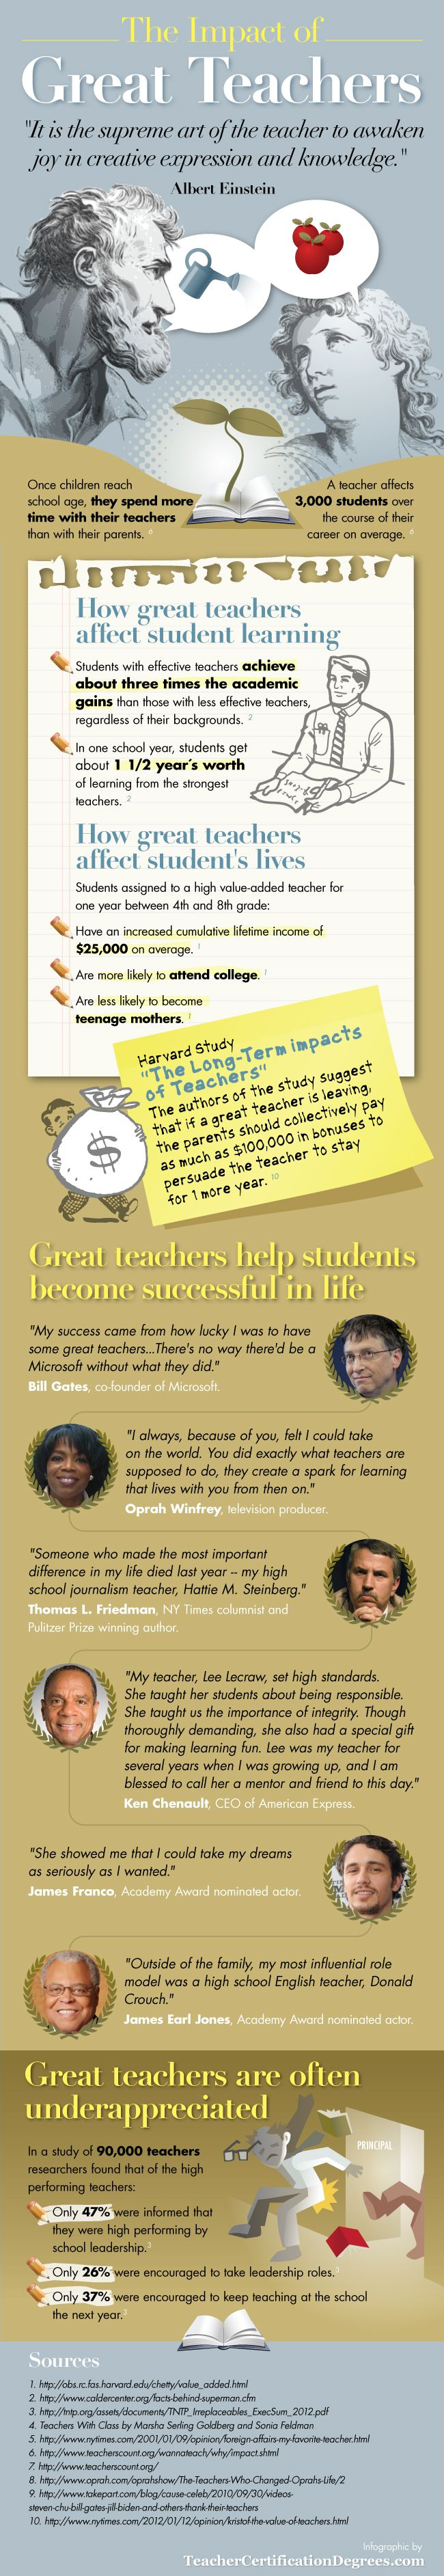 Great teachers make a significant difference is the lives of students and the impact lasts long after they leave the classroom. The following infographic provides interesting facts from the research on how effective teachers impact the lives of students and quotes from successful individuals who credit their teachers for helping them achieve their dreams.